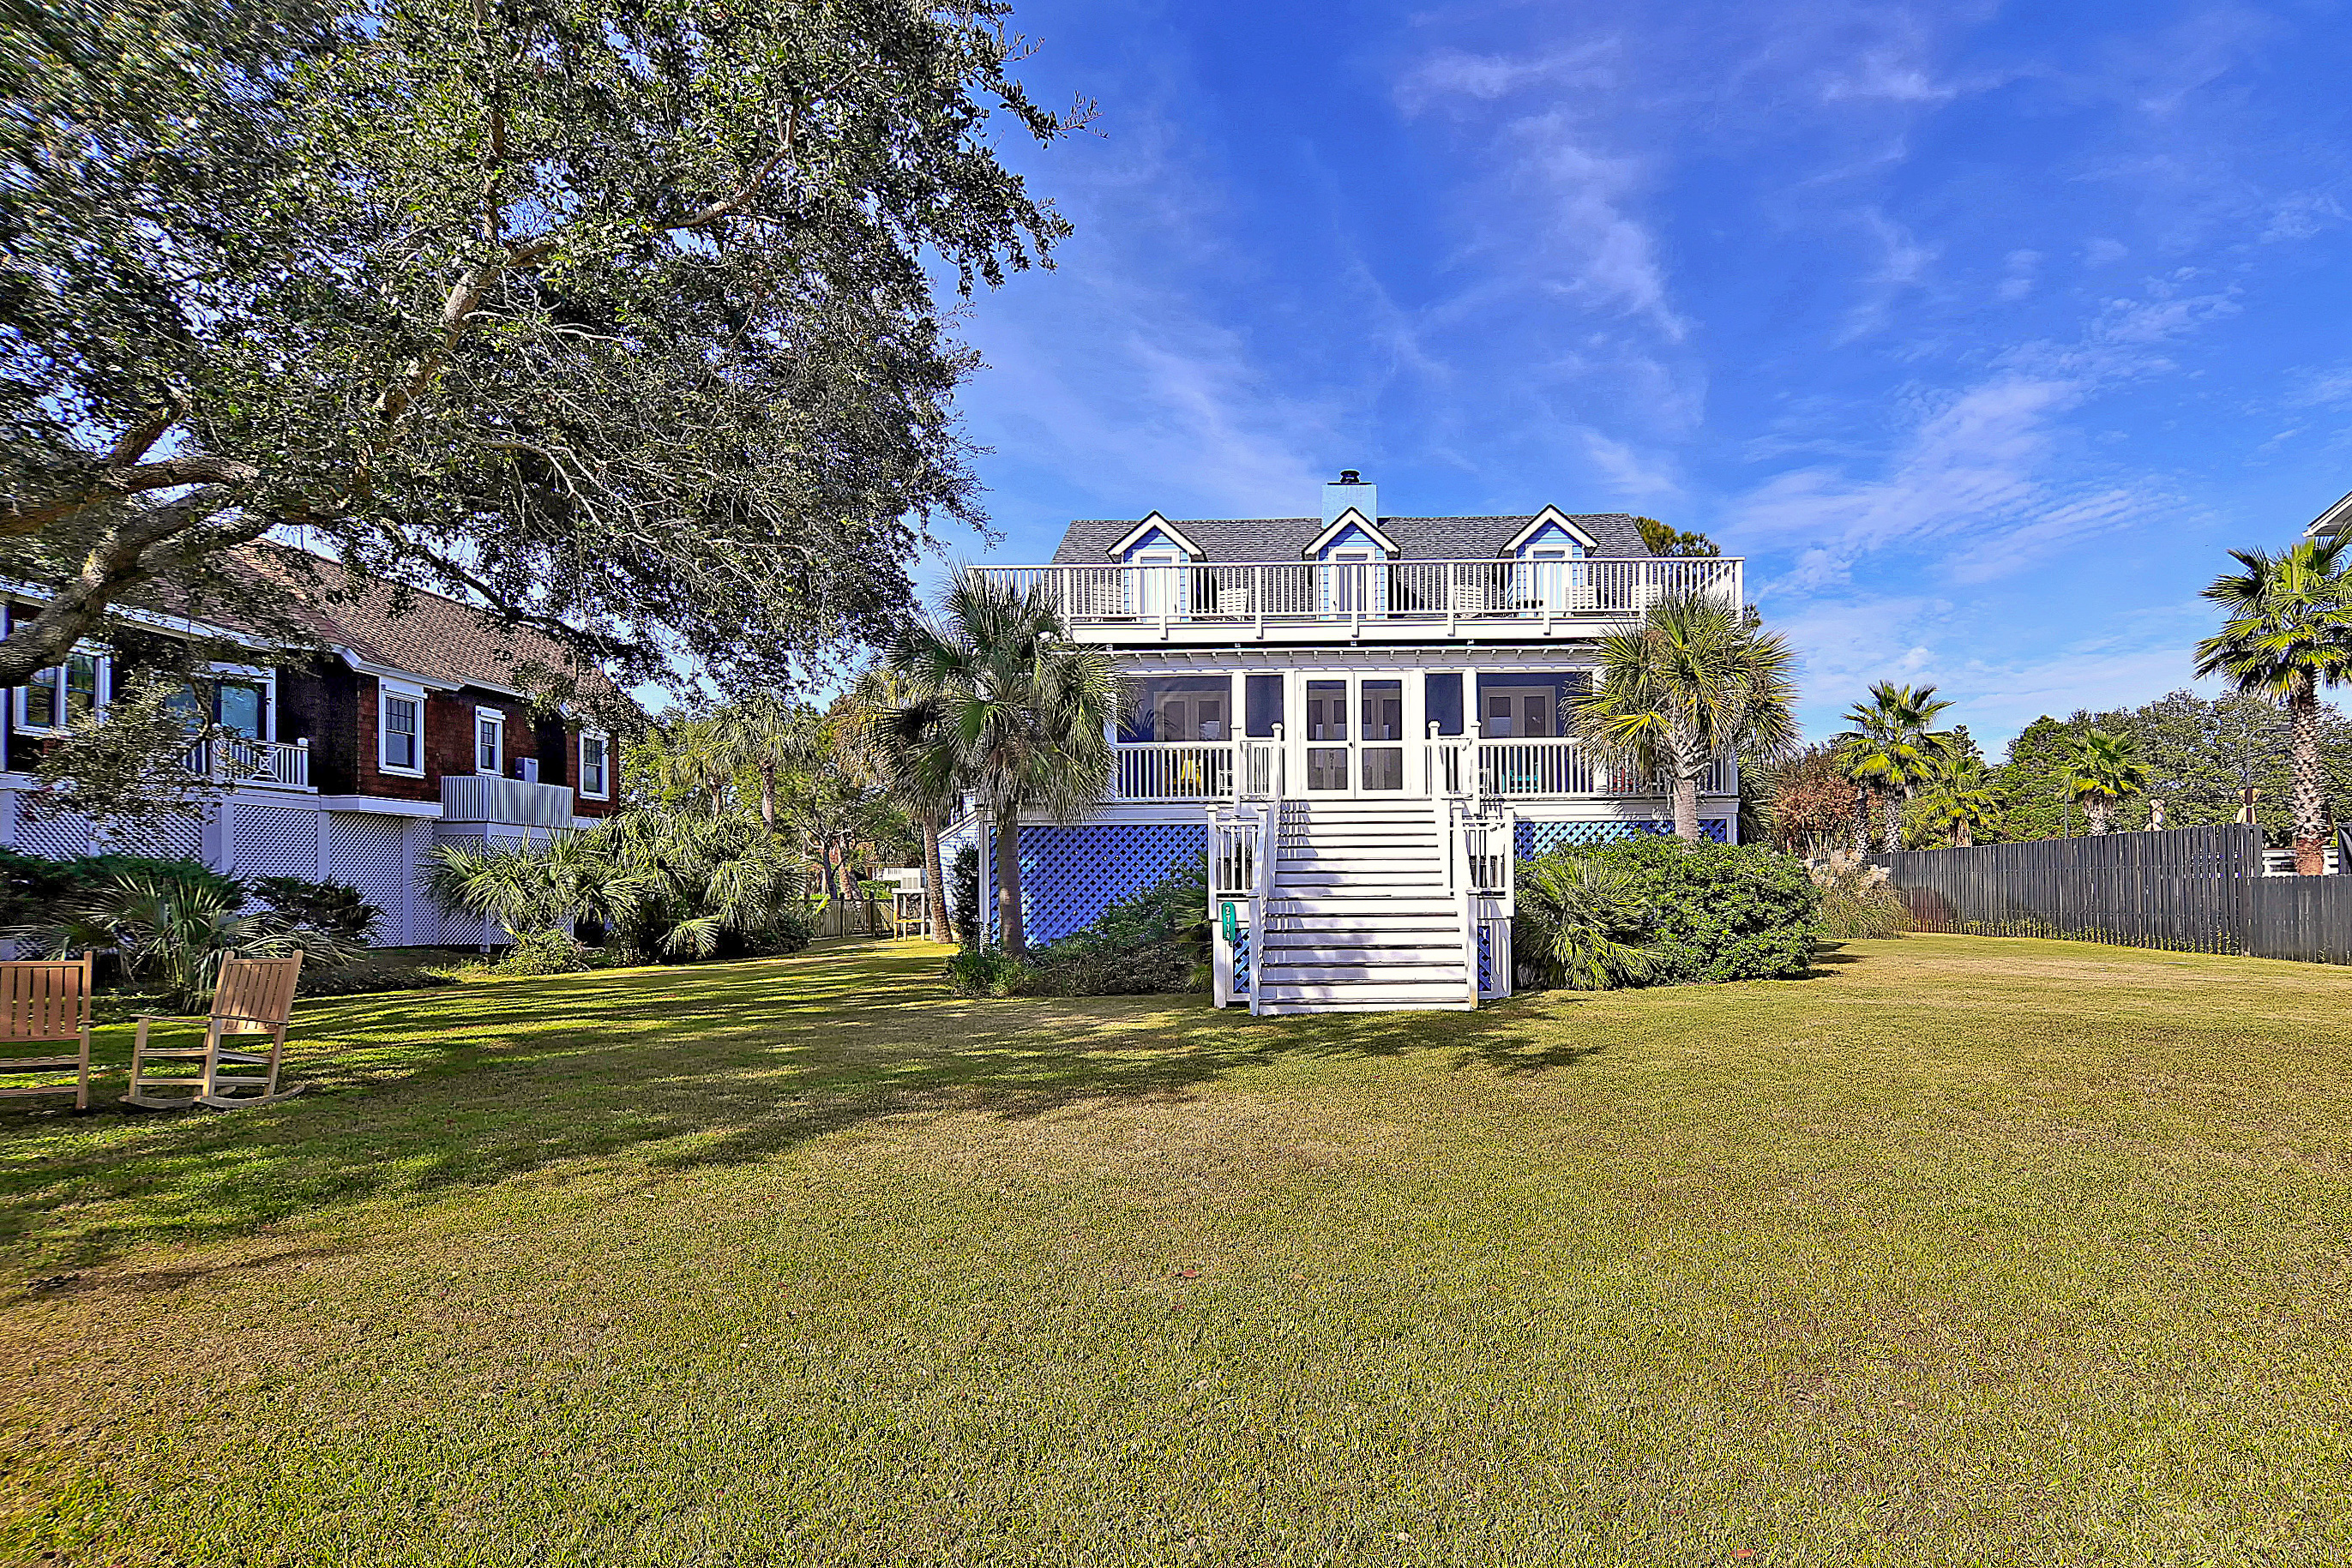 Sulivan's Island SC Vacation Rental Welcome to Sullivan's